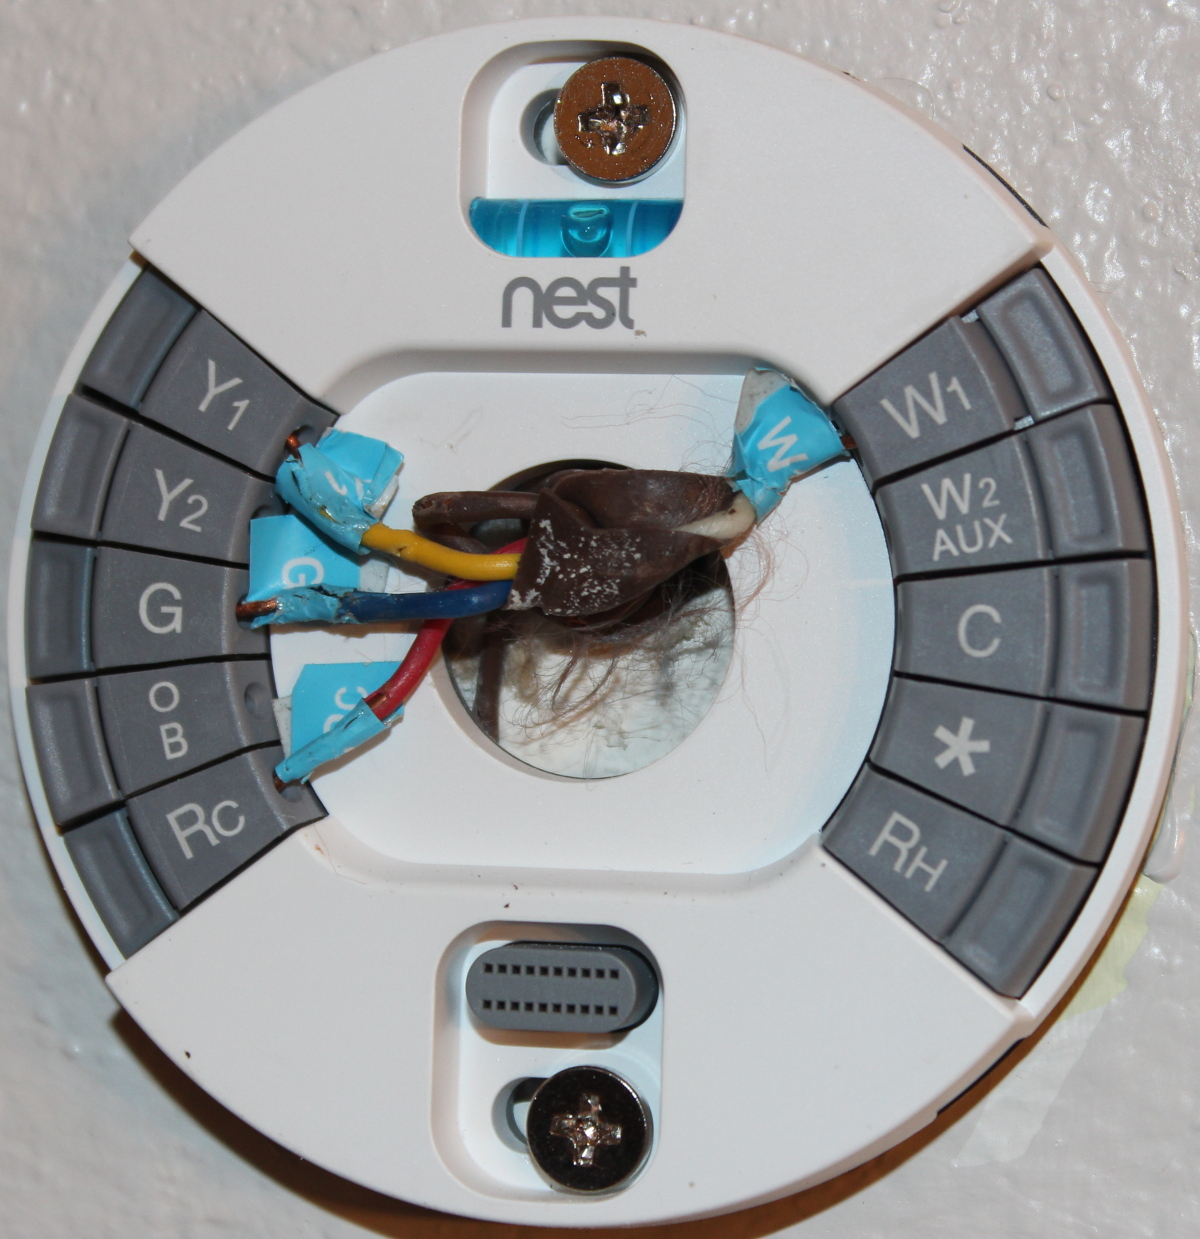 nest 3rd homekit gmos 04 wiring diagram 2 gen learning thermostat review install setup